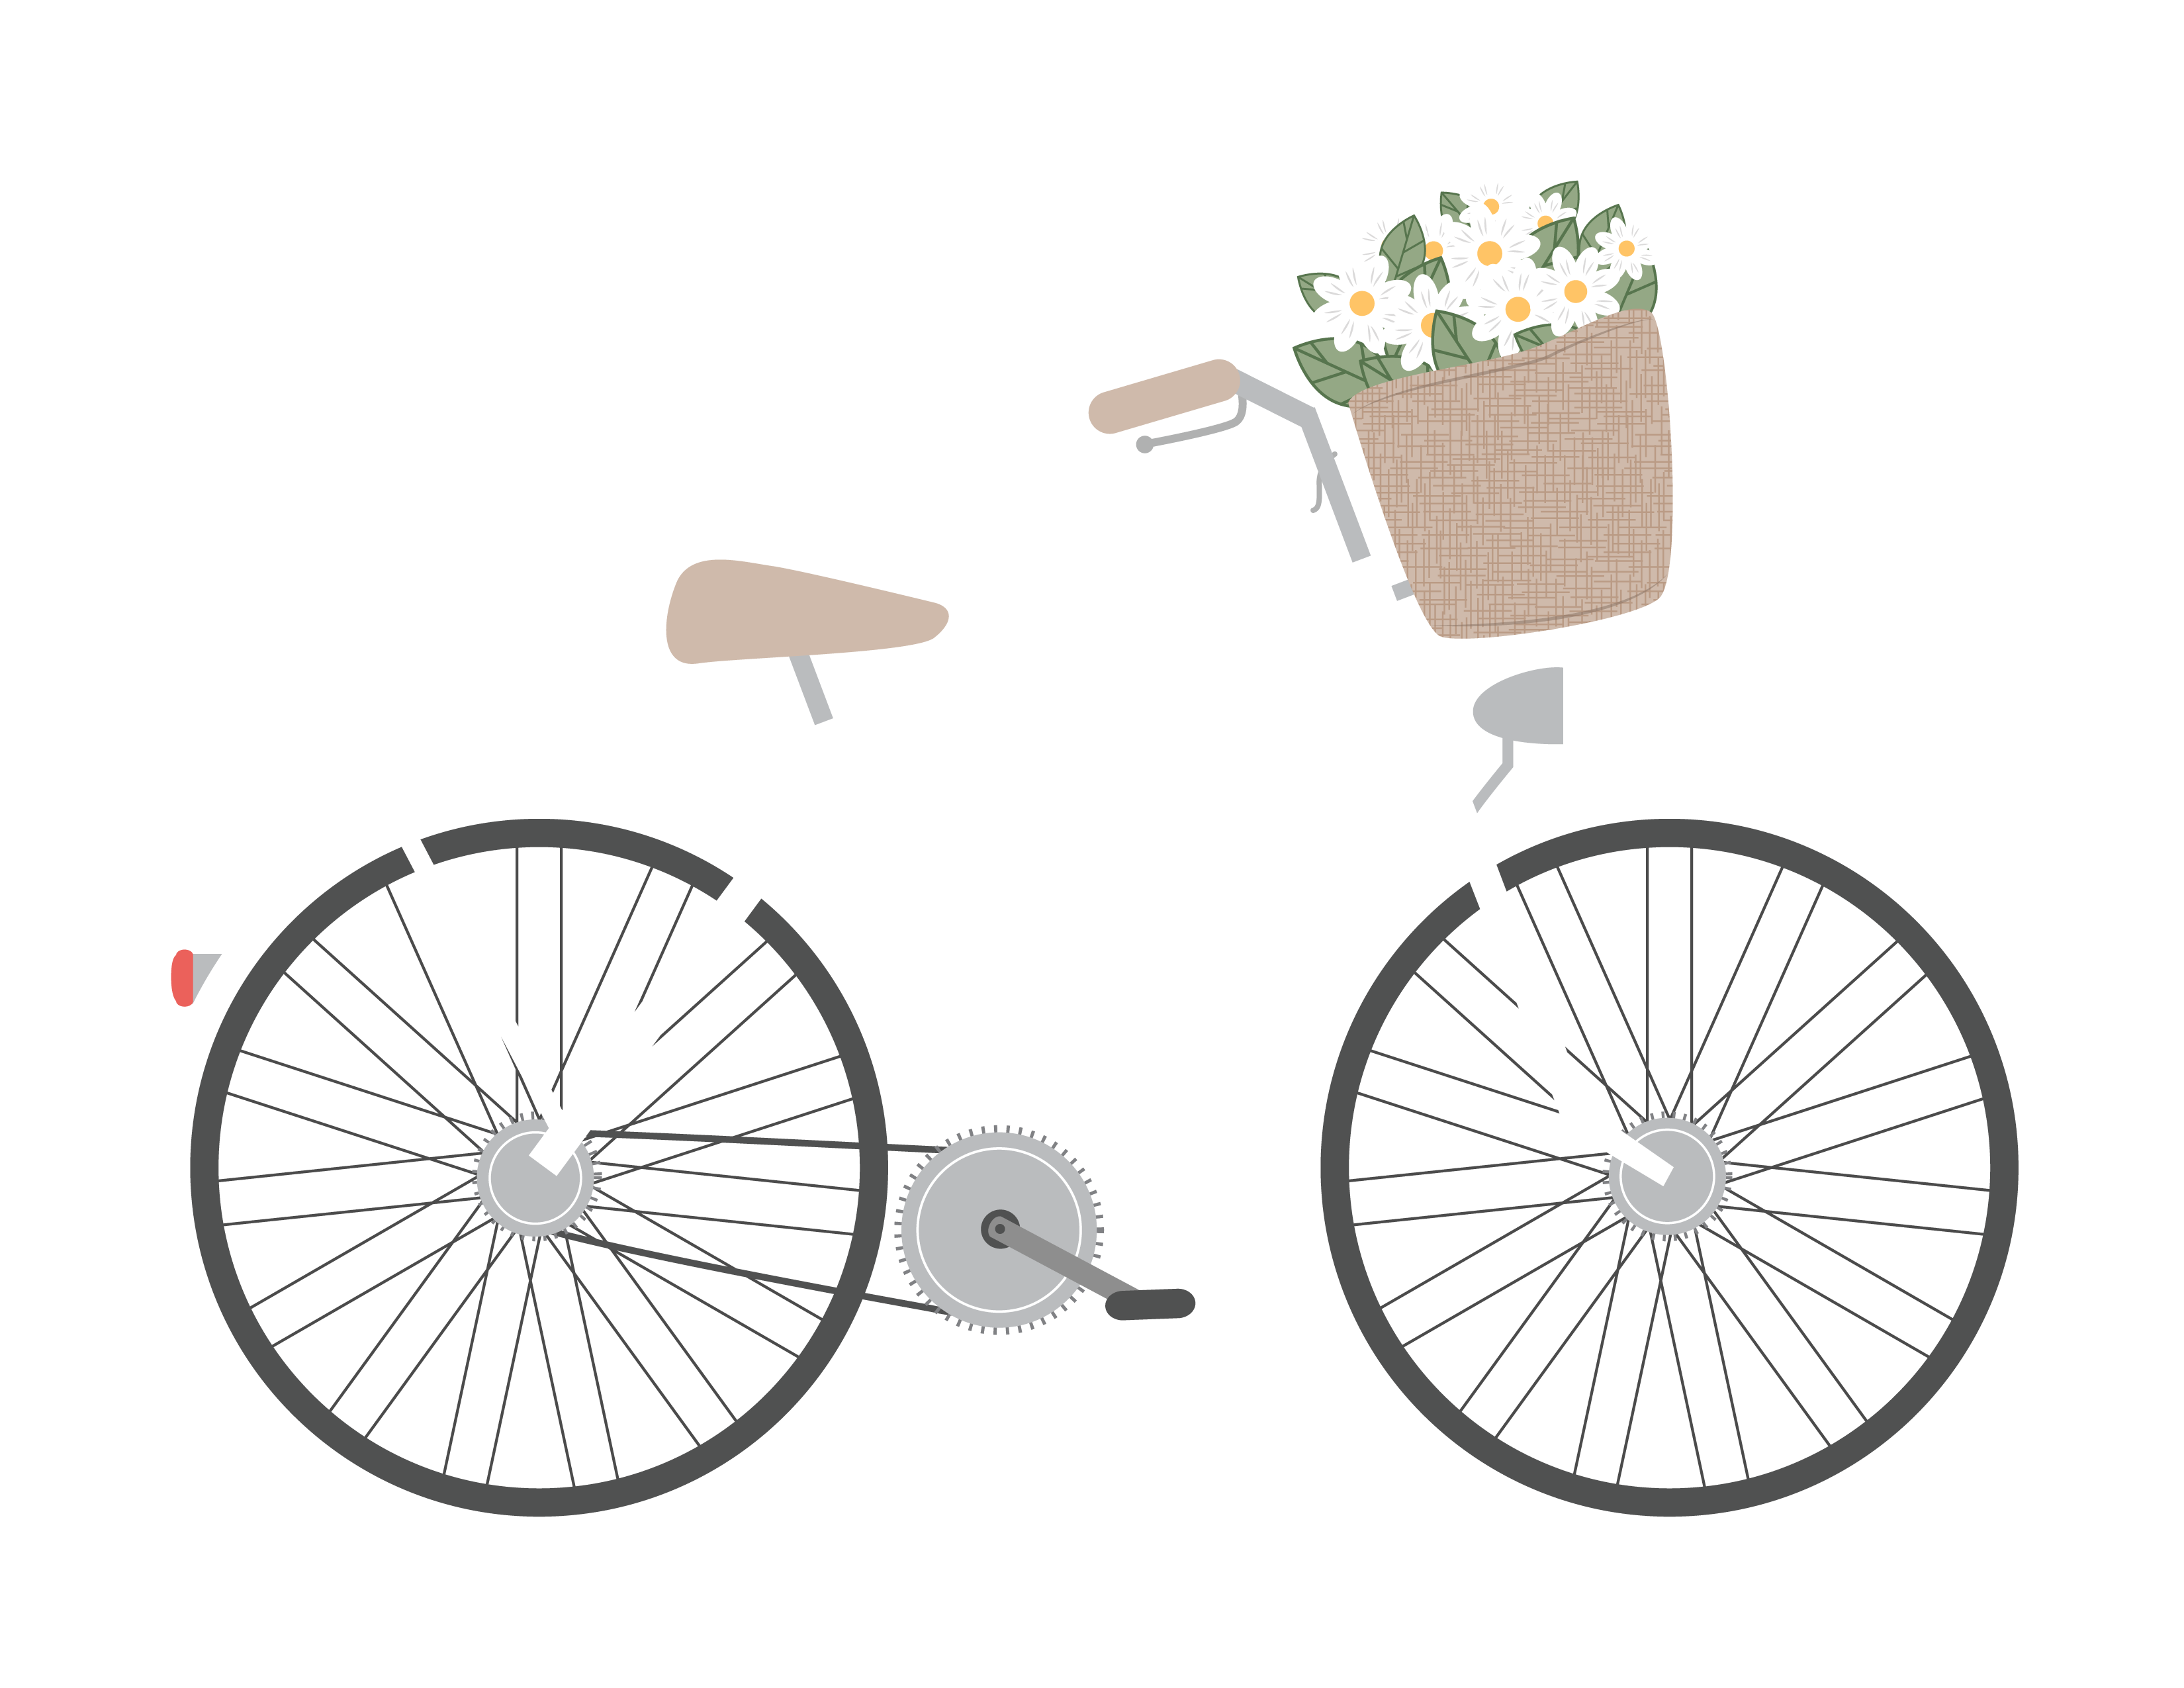 Bicycle clipart illustrated. Free romantic clip art